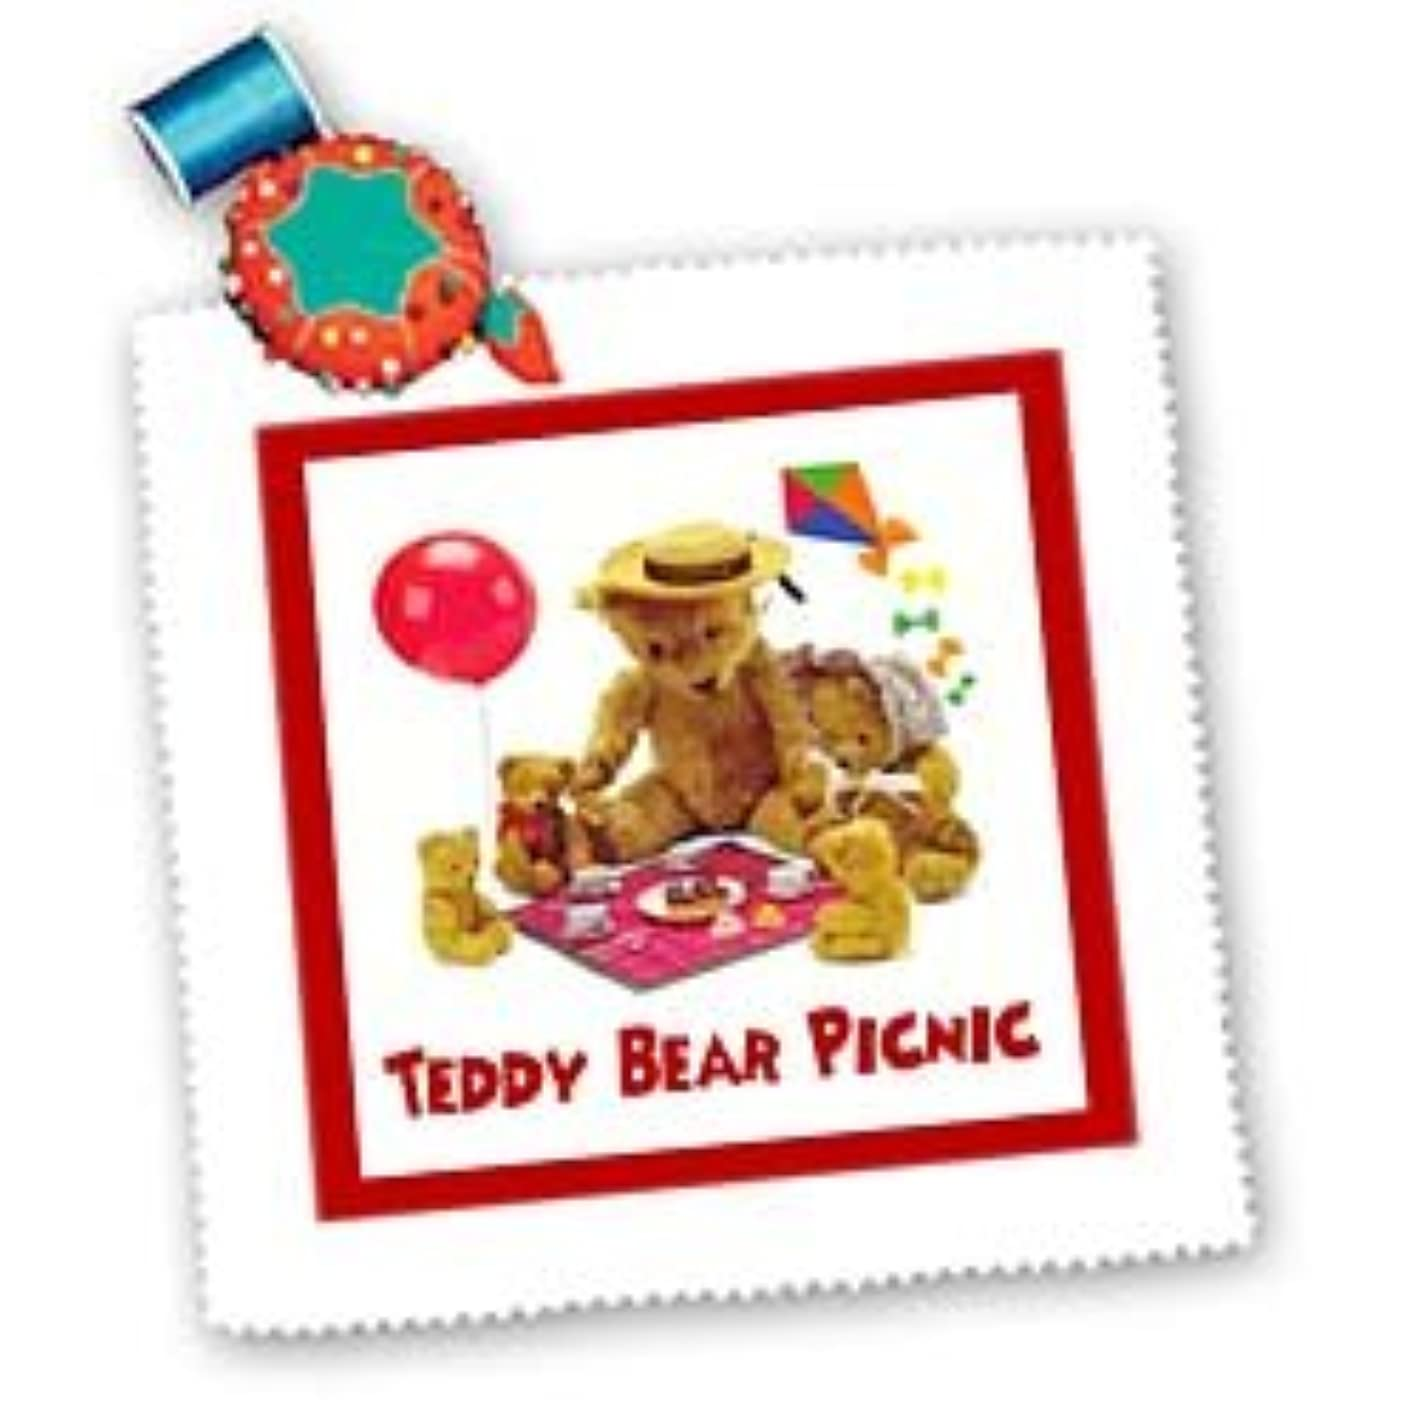 Susan Brown Designs Teddy Bear Picnic Square Quilt Sheet, 10 by 10-Inch